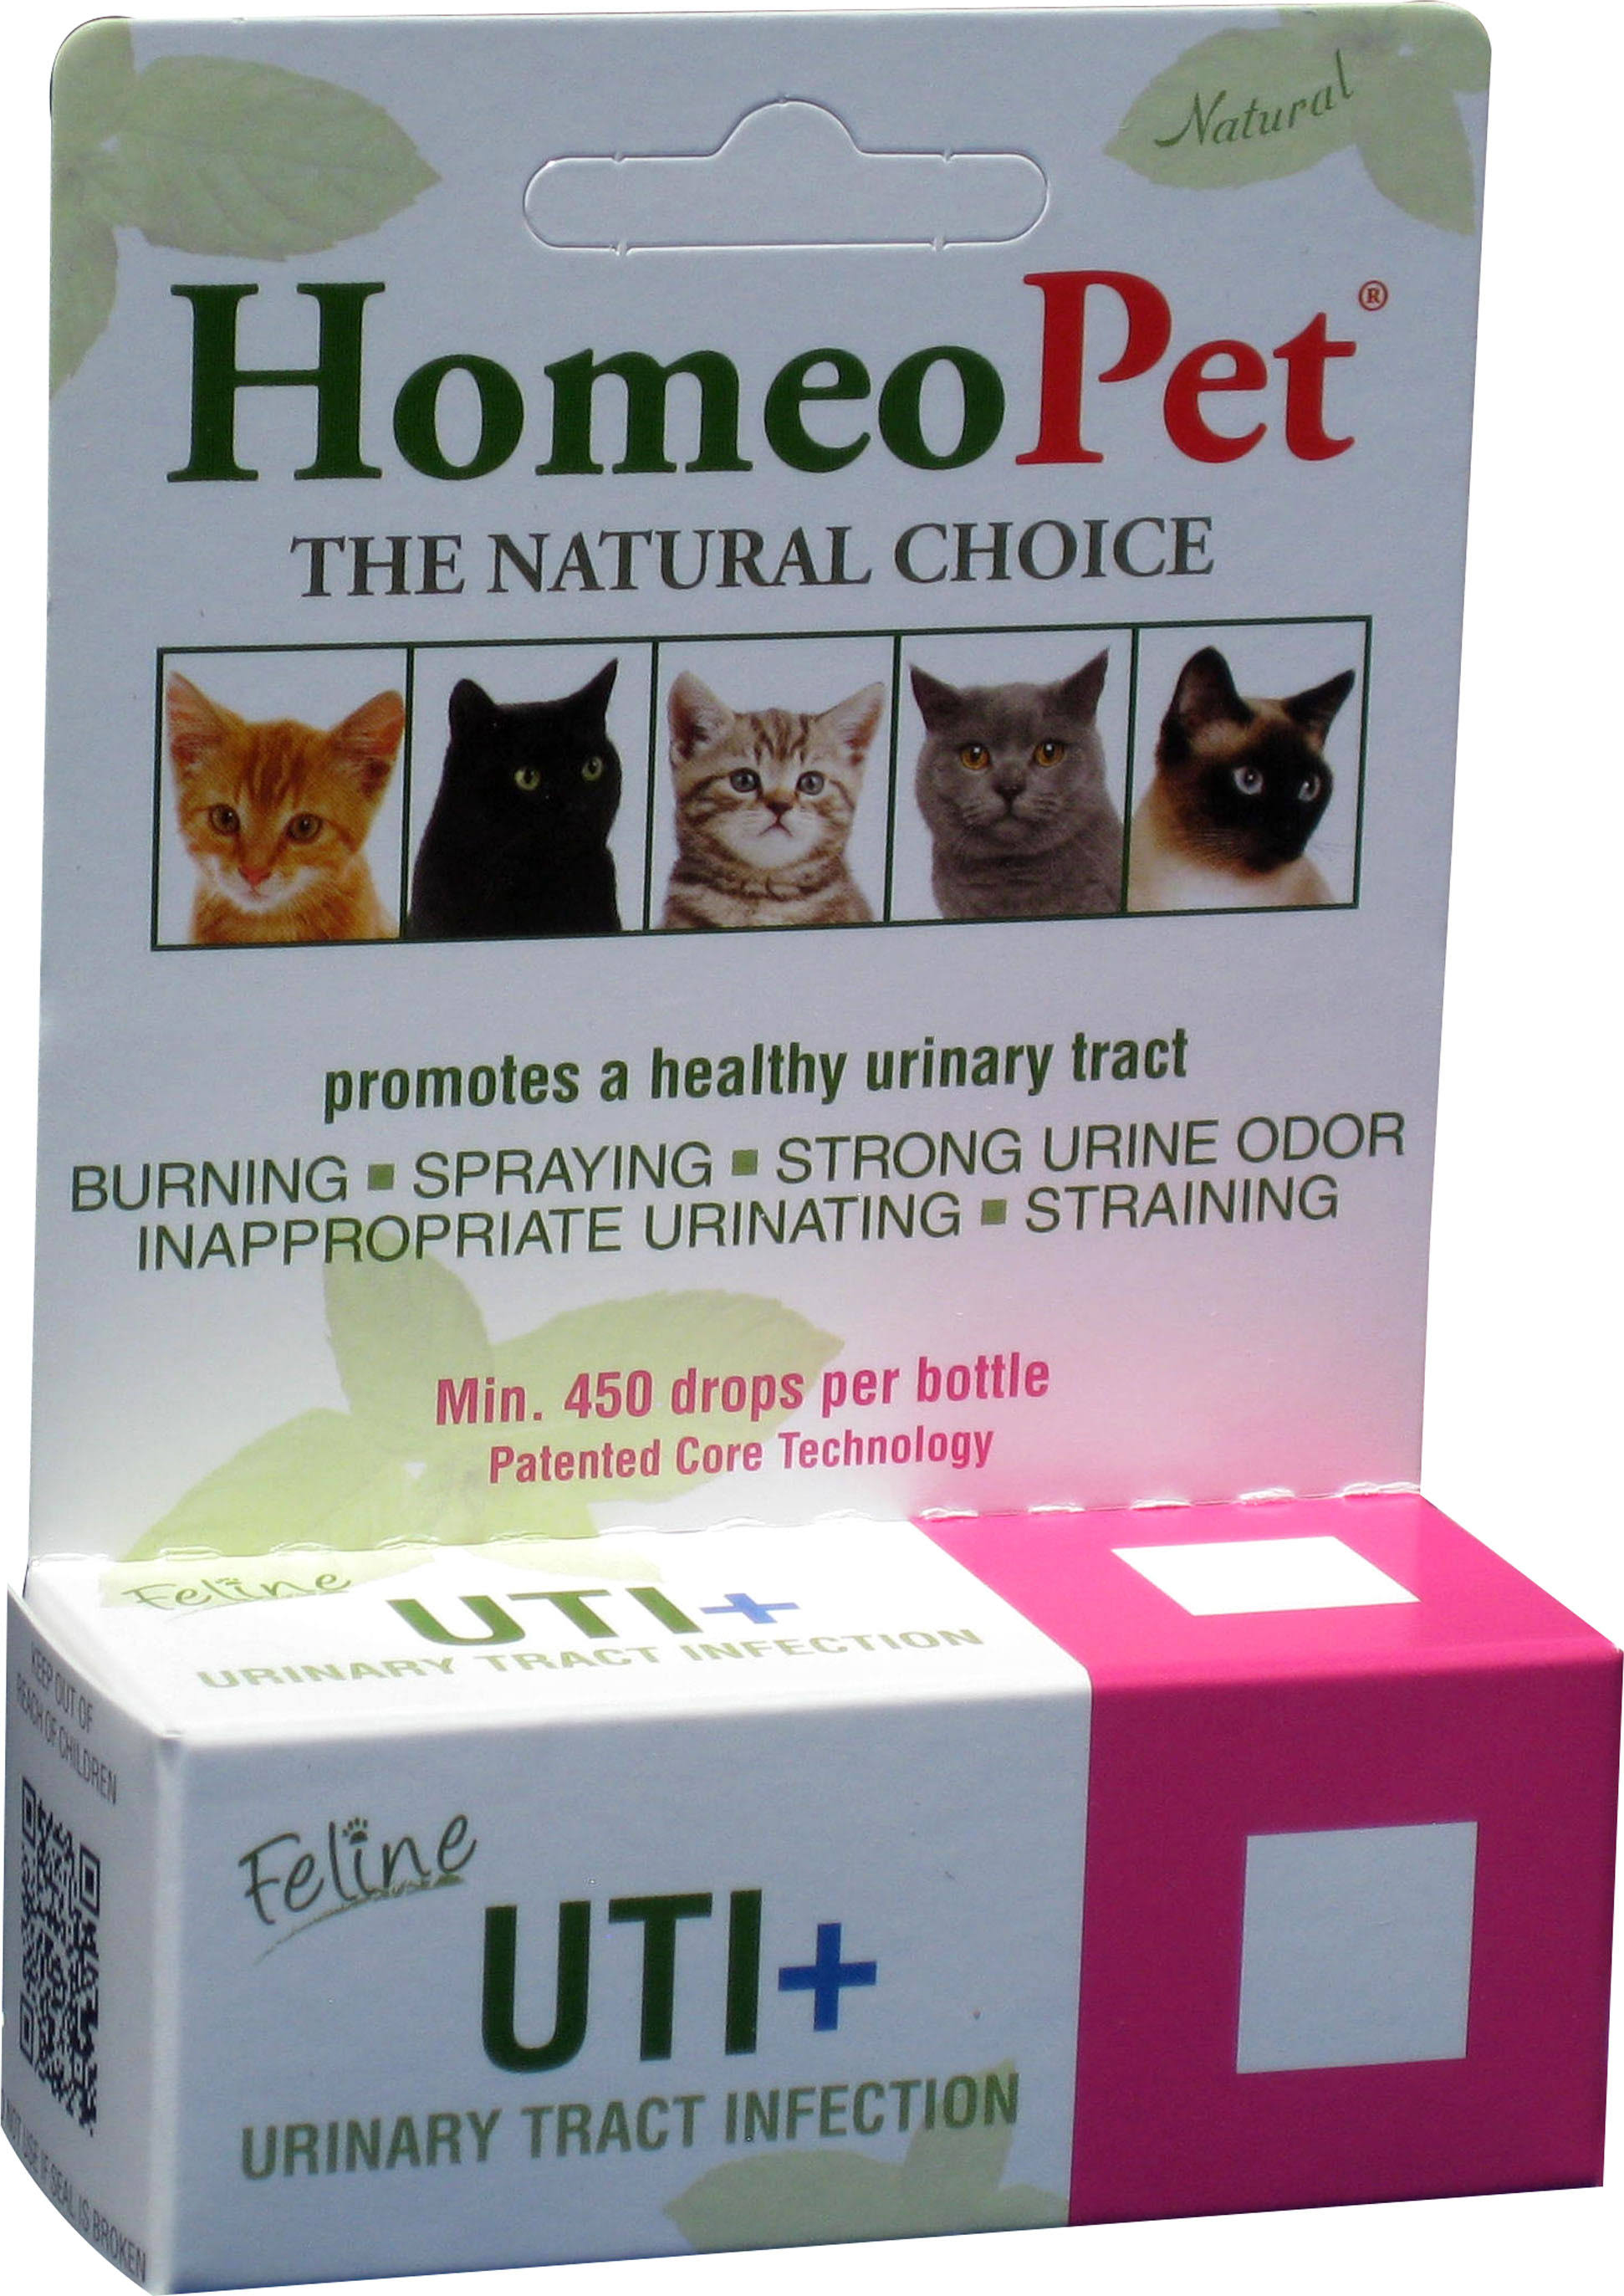 Homeopet Feline Urinary Tract Infection Supplement - 15ml